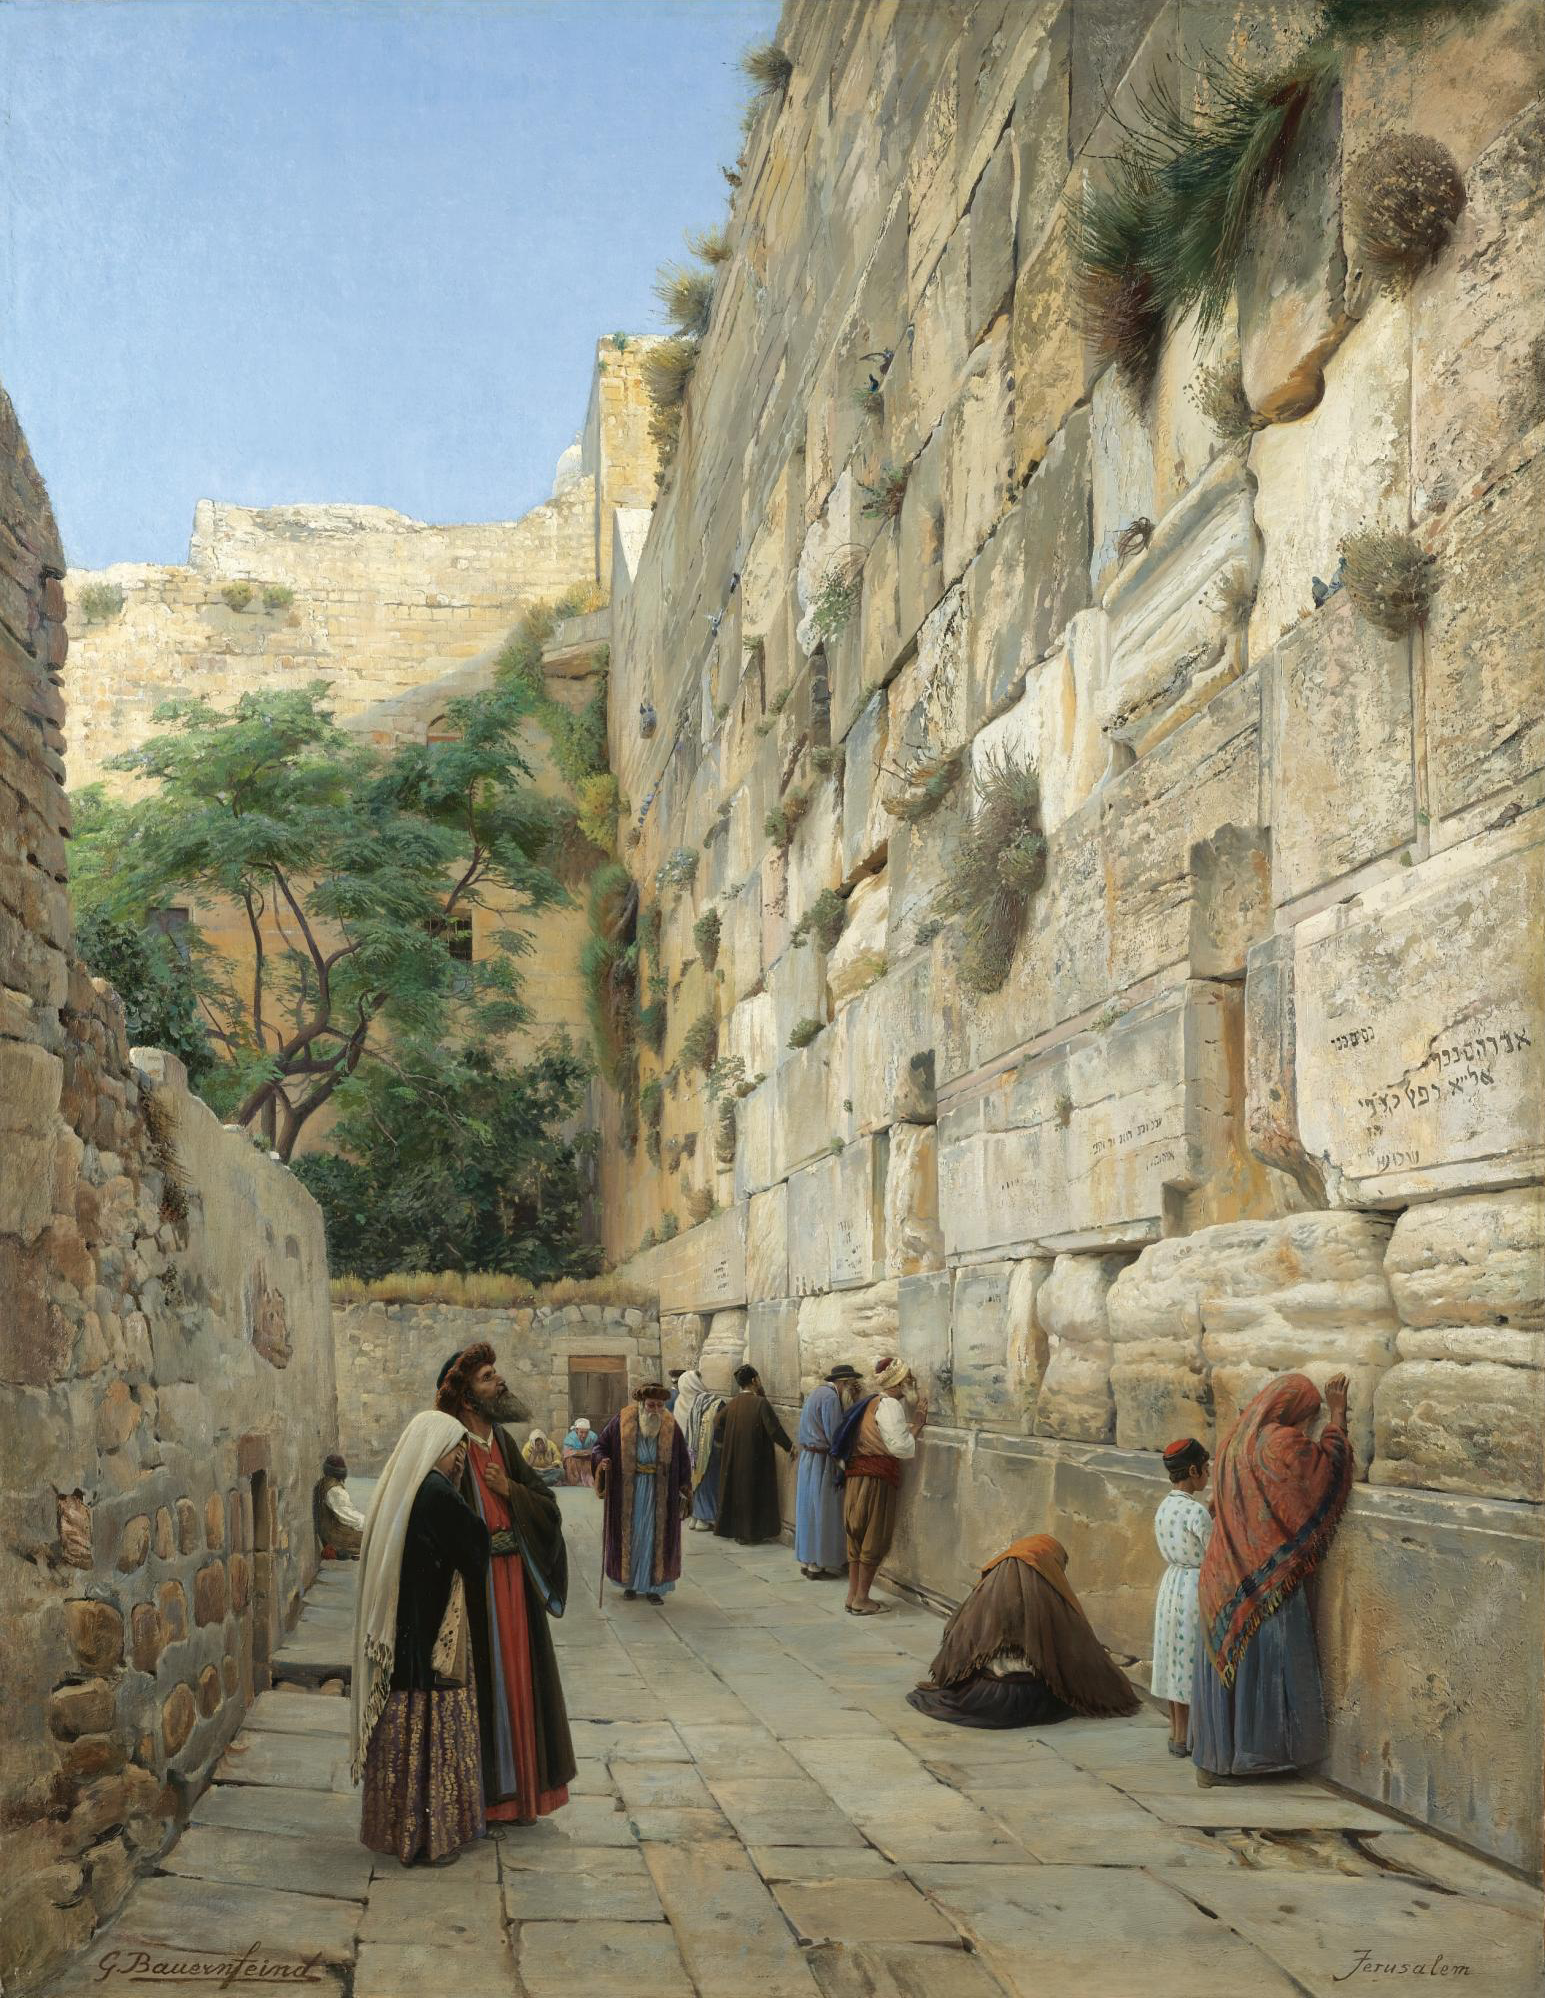 The Wailing Wall, Jerusalem [Gustav Bauernfeind, 1848-1904]